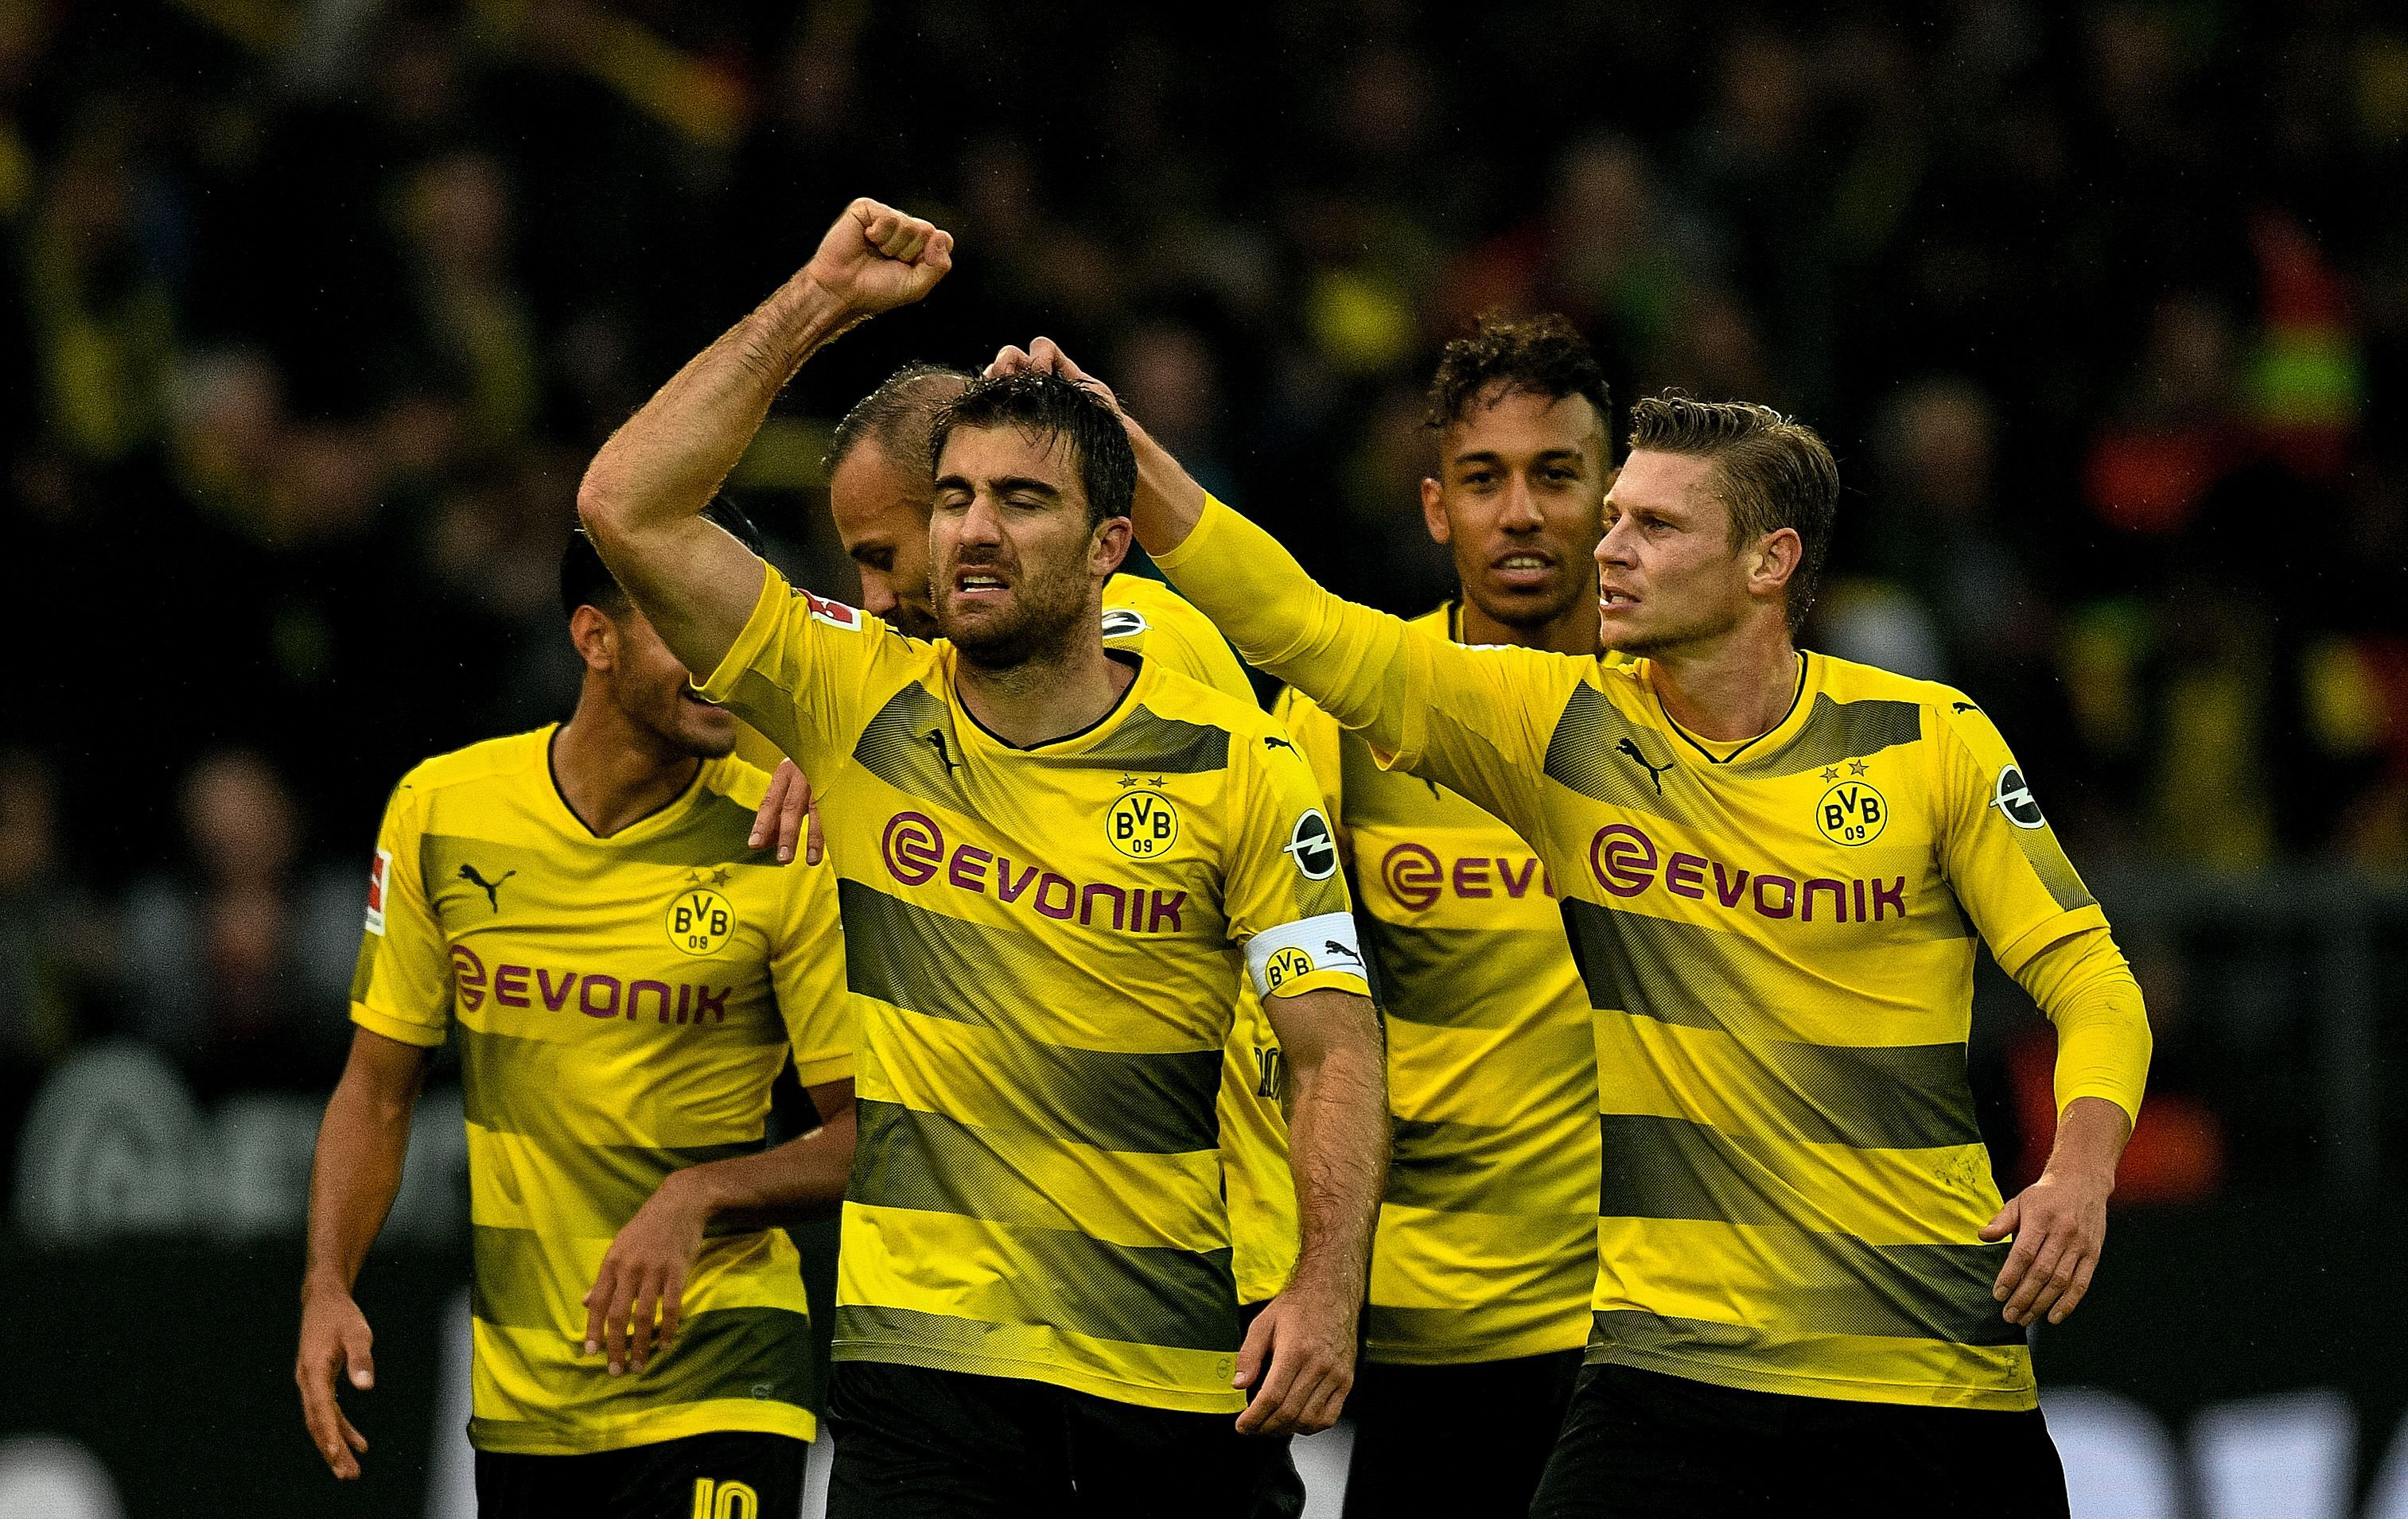 borussia dortmund must take full advantage of the turmoil